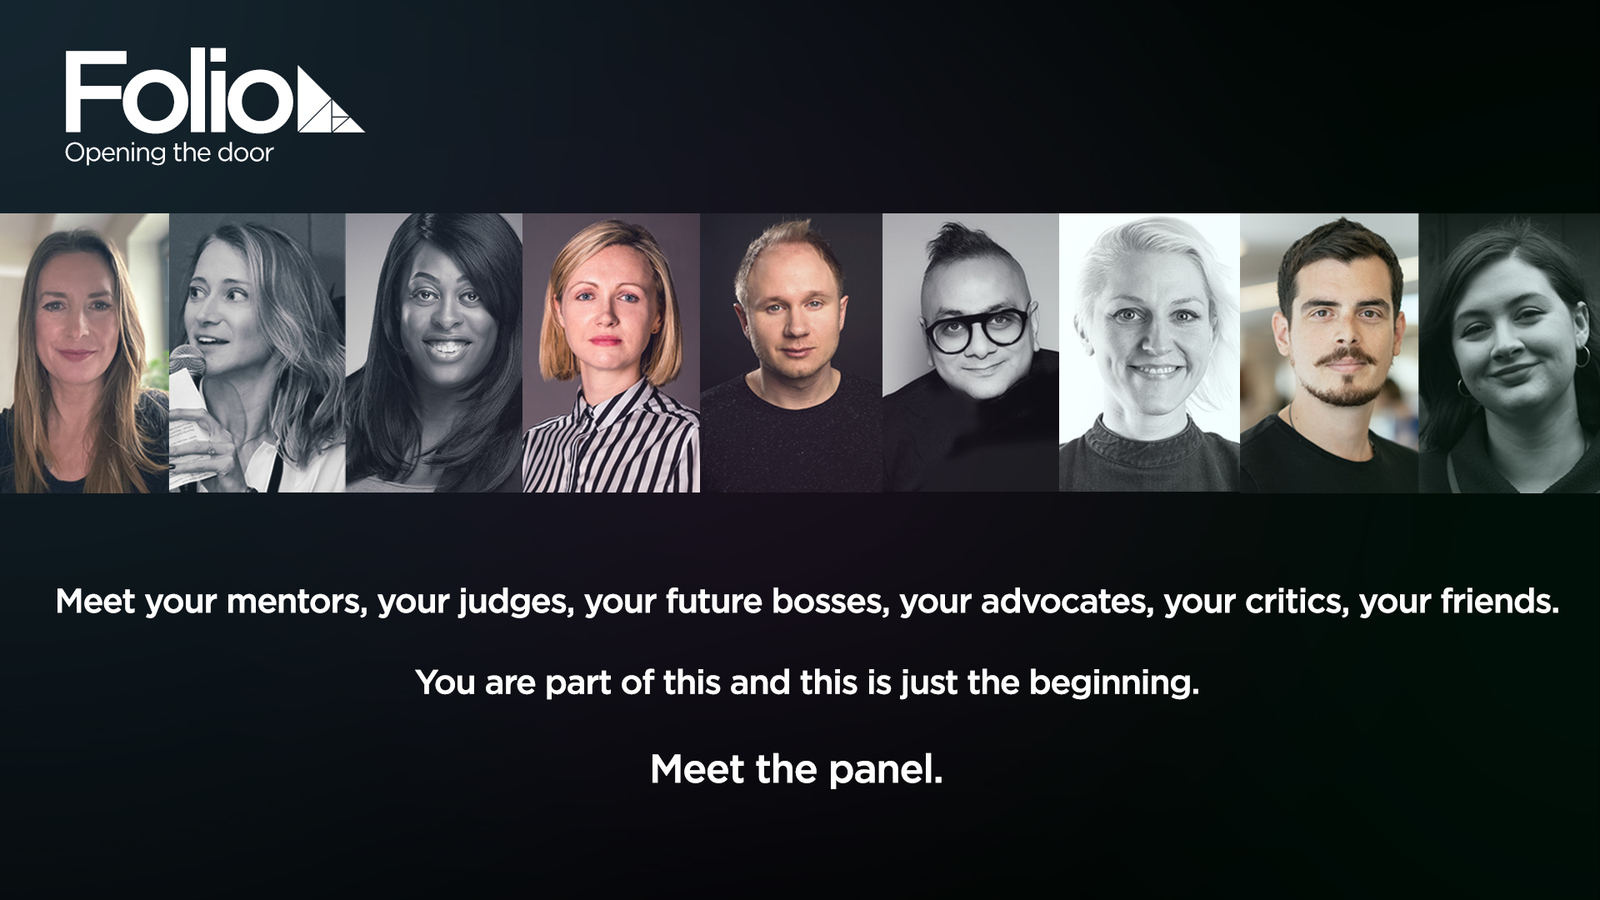 poster showing all the panellists, creative directors in the advertising industry.